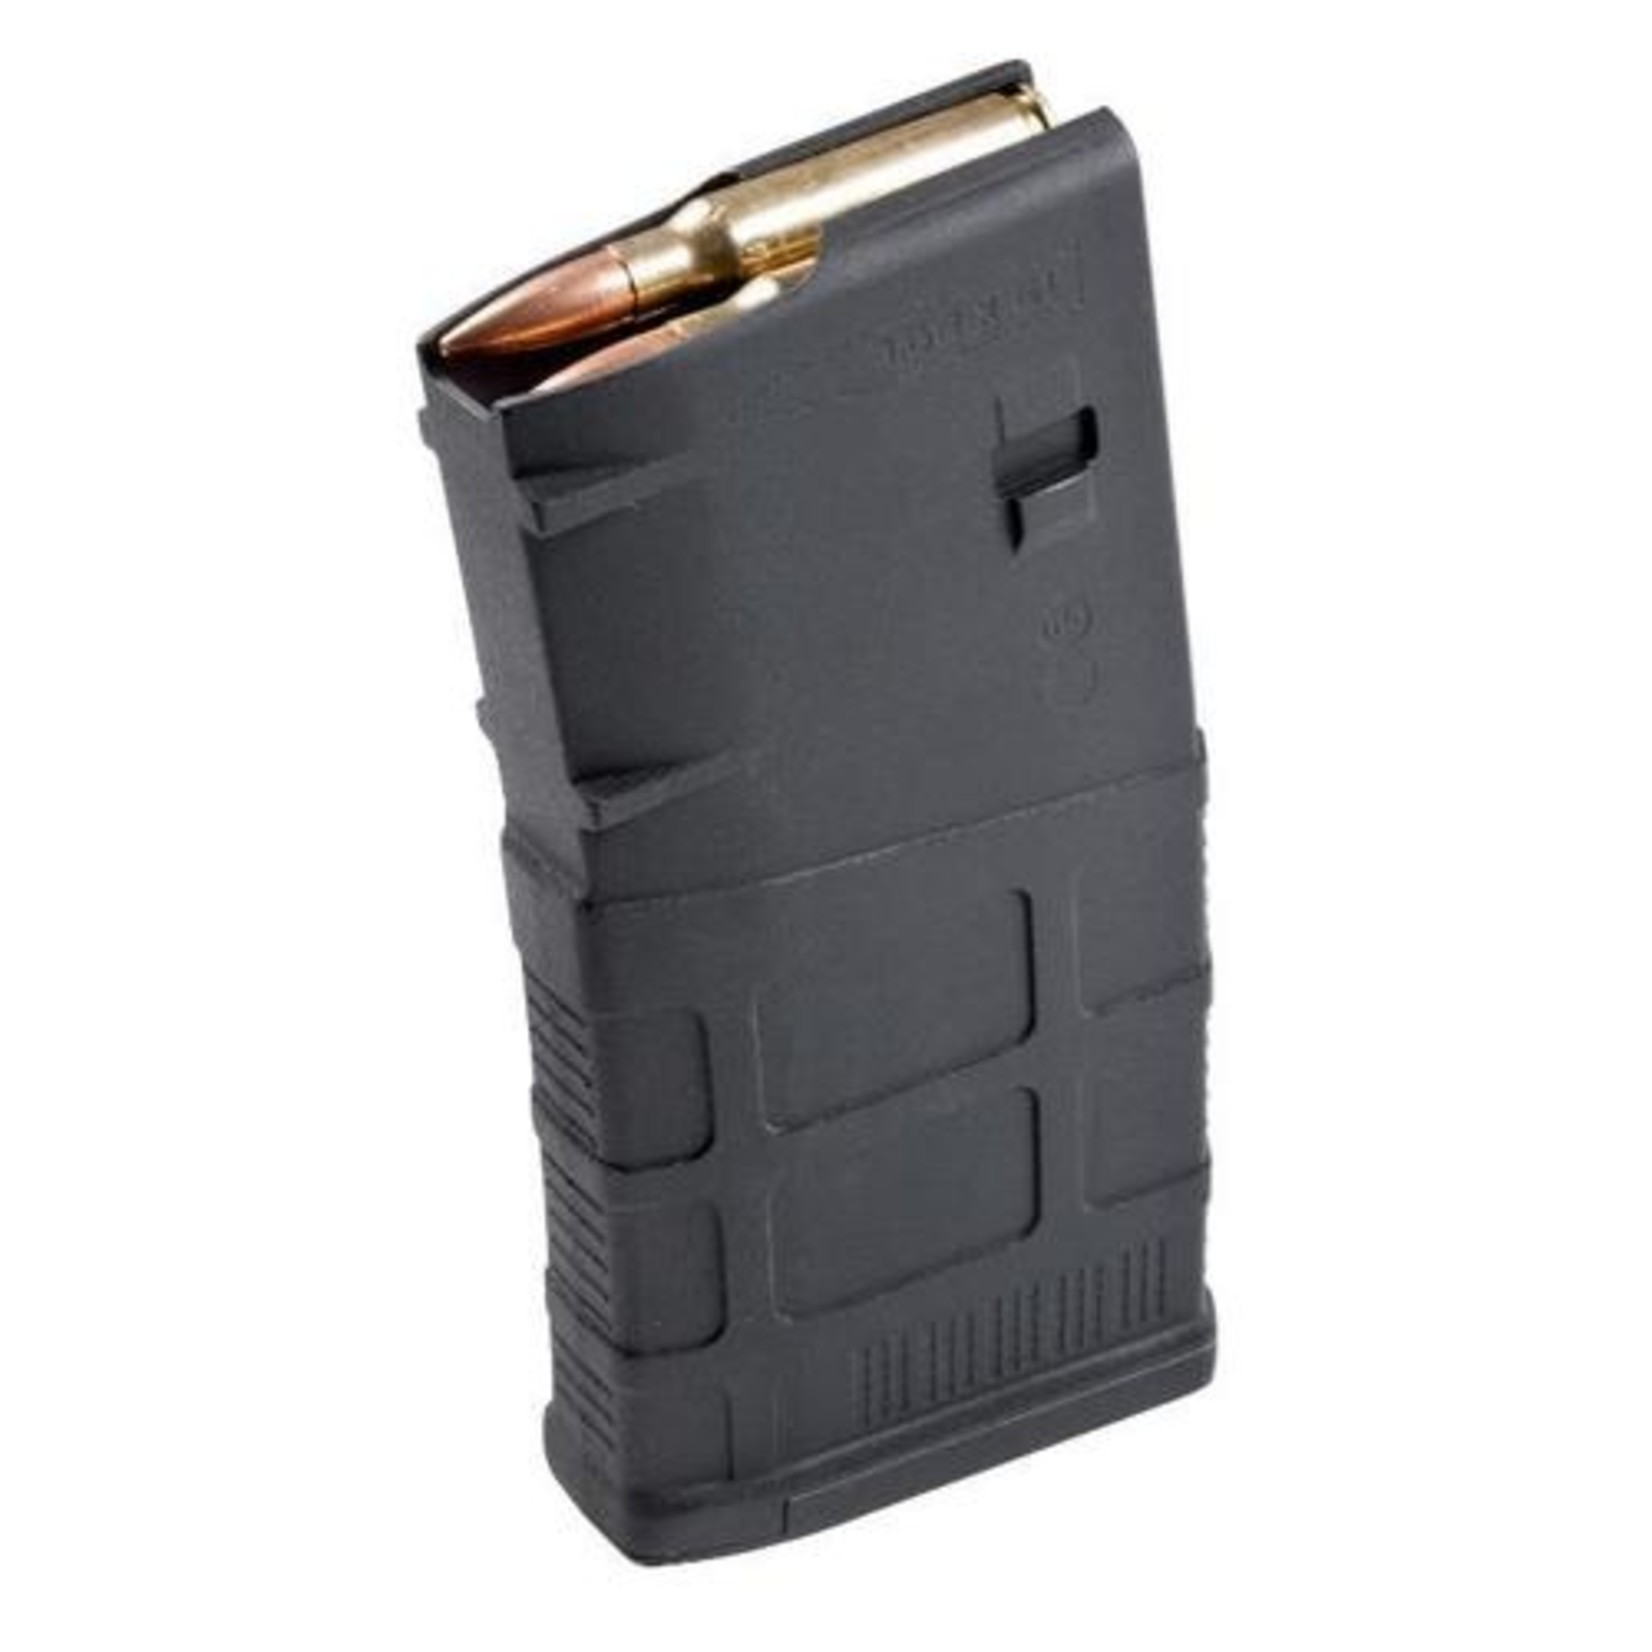 MAGPUL PMAG 20 LR/SR GEN M3, 7.62x51 PINNED TO 5